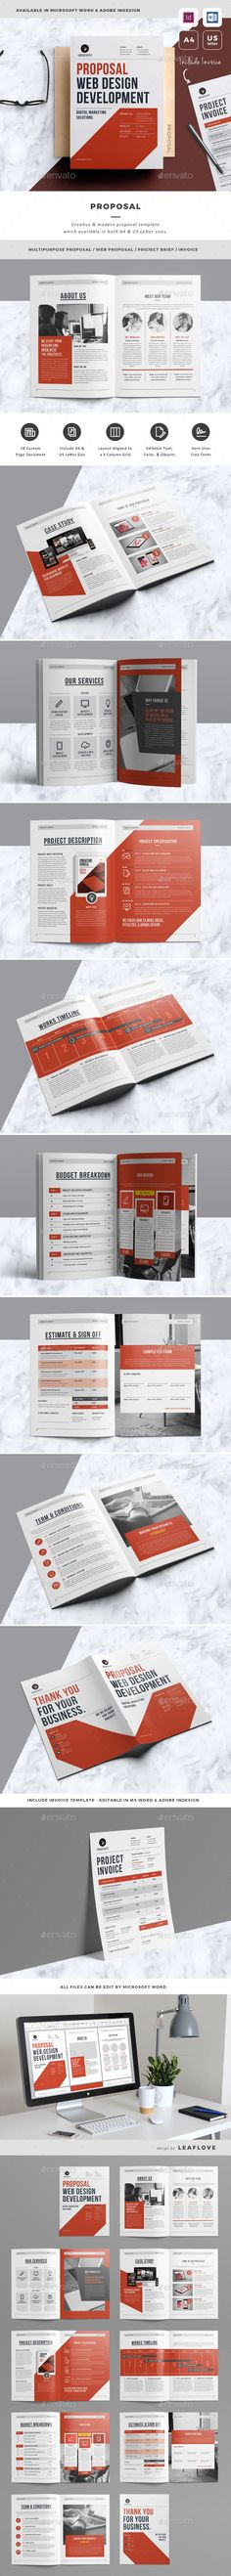 Proposal — InDesign INDD #web design #marketing #contract • Download ➝ https://graphicriver.net/item/proposal/19509764?ref=pxcr